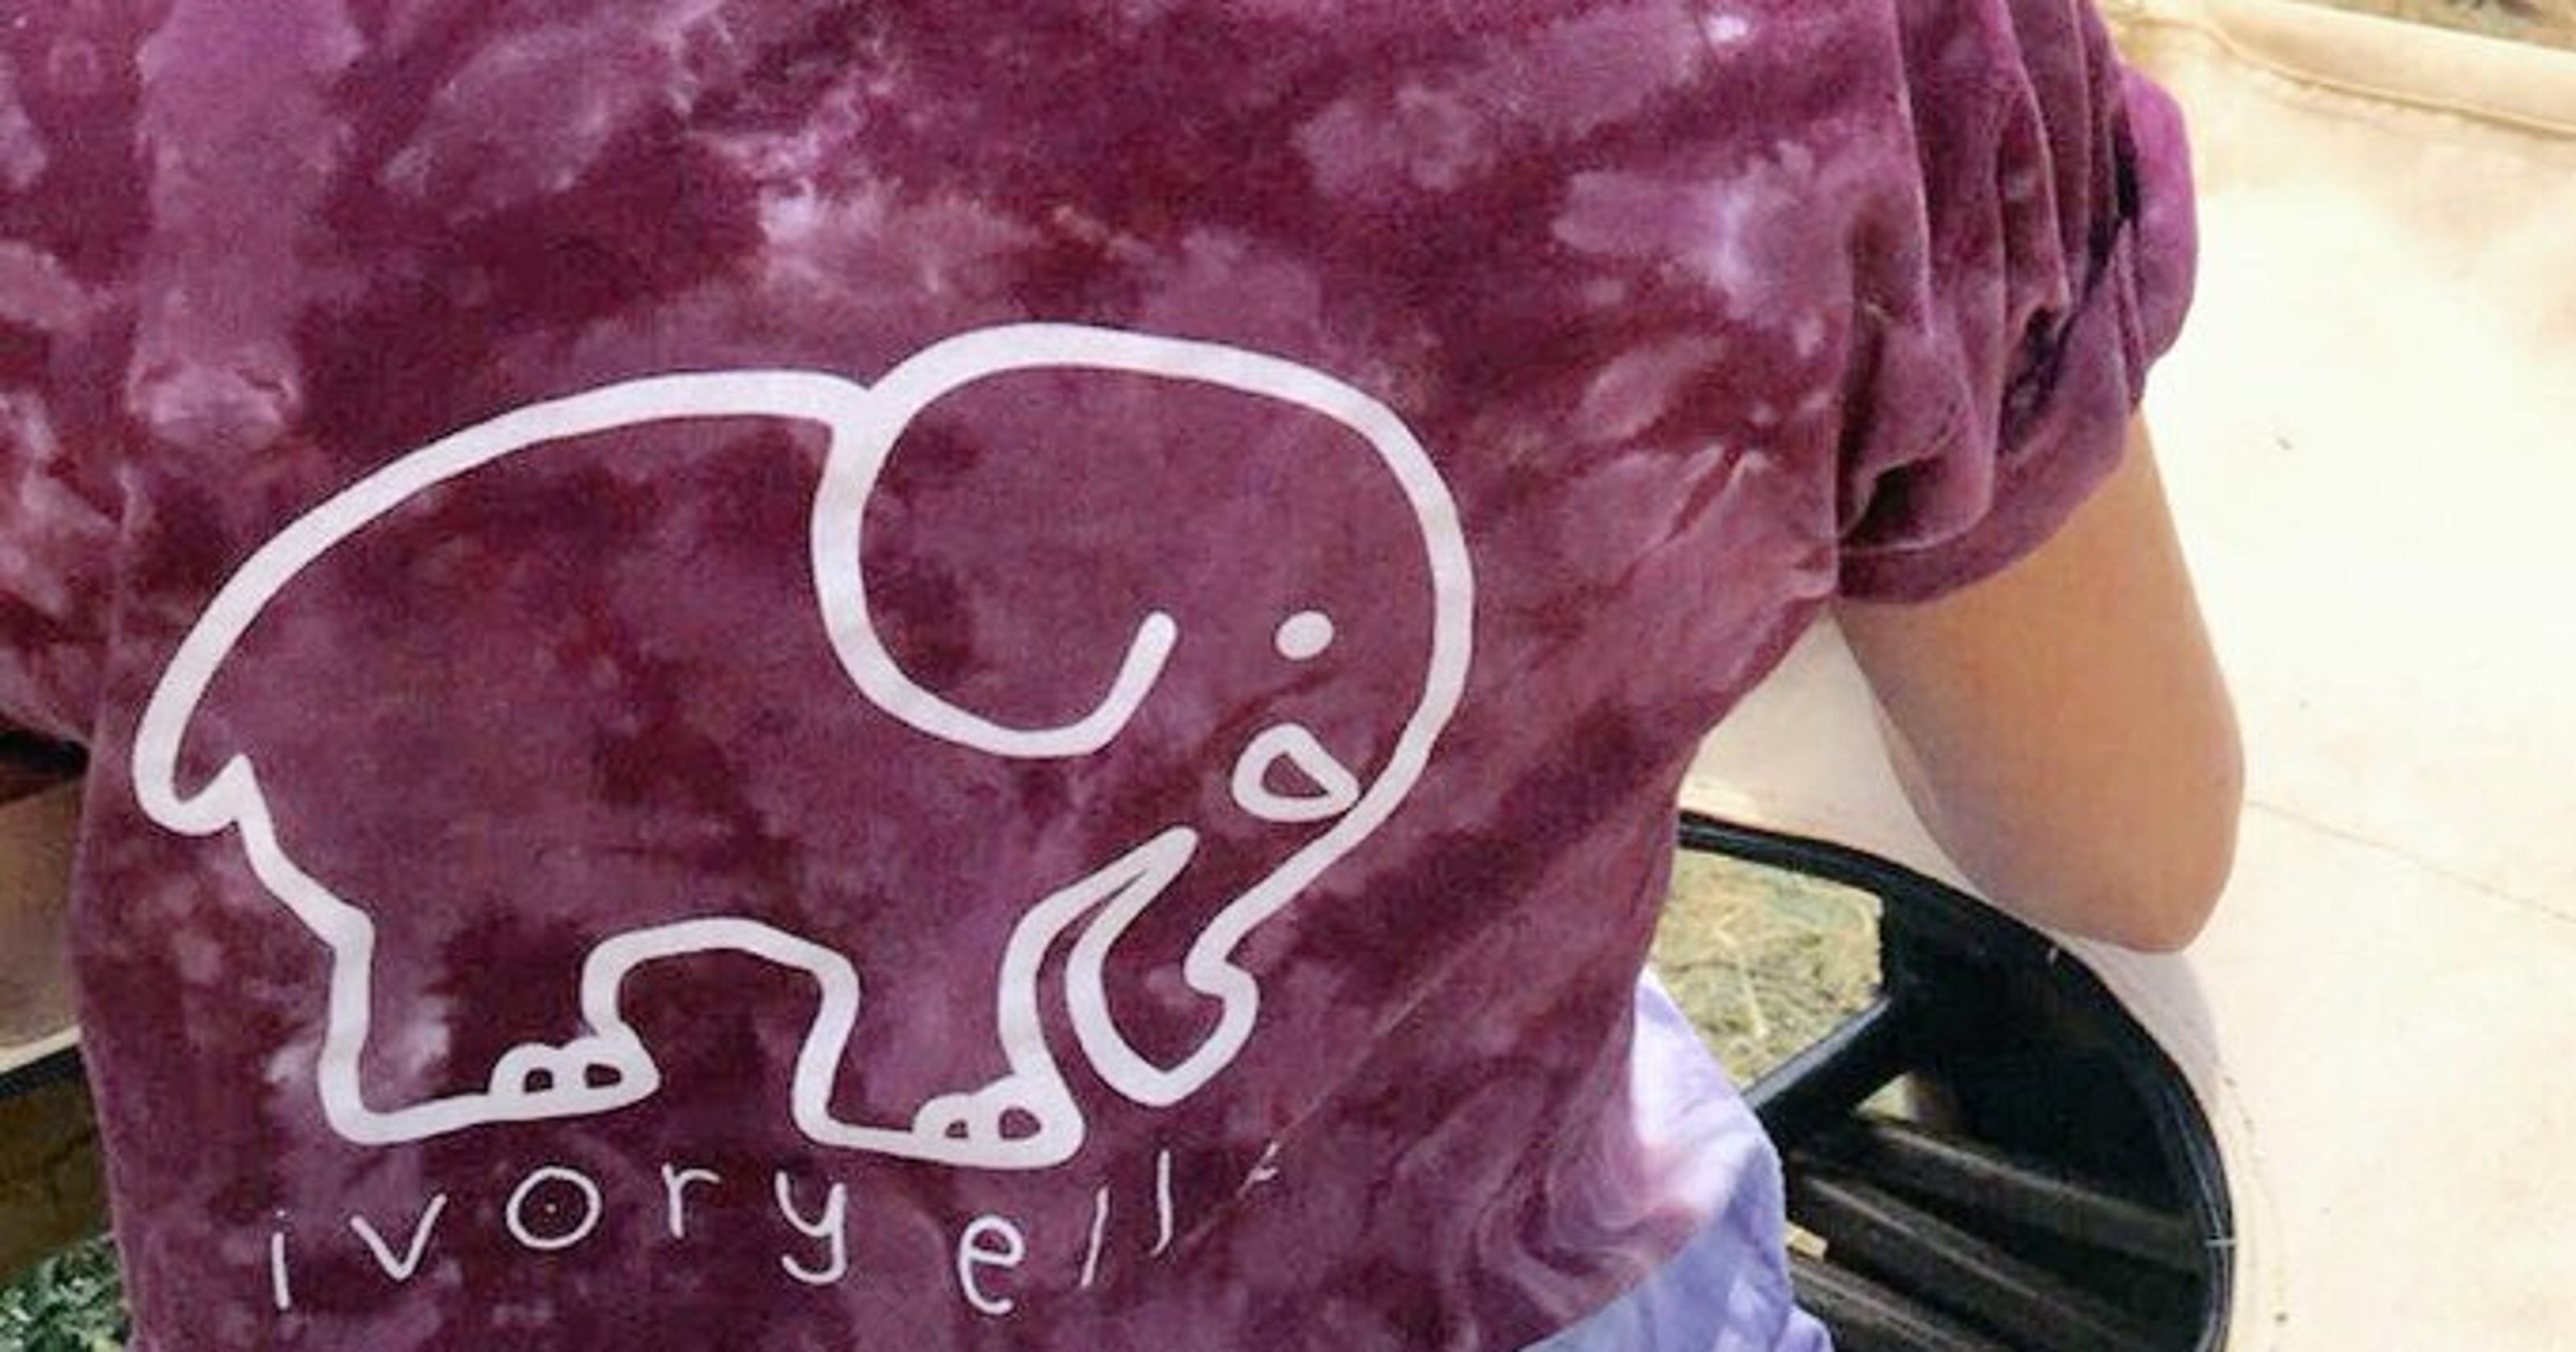 Buy This Shirt And Help An Elephant